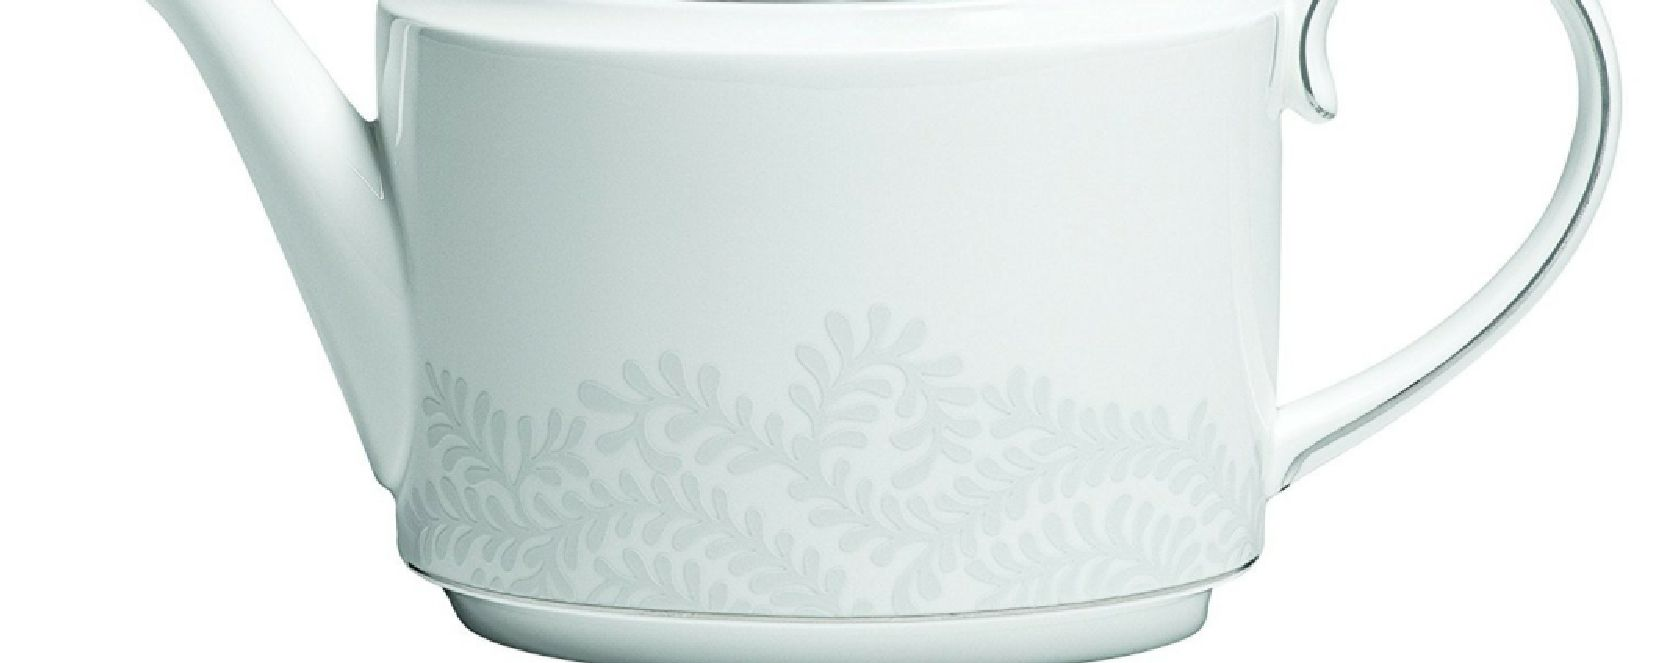 trailing-vines-vera-wang-wedgwood-categorie-azay